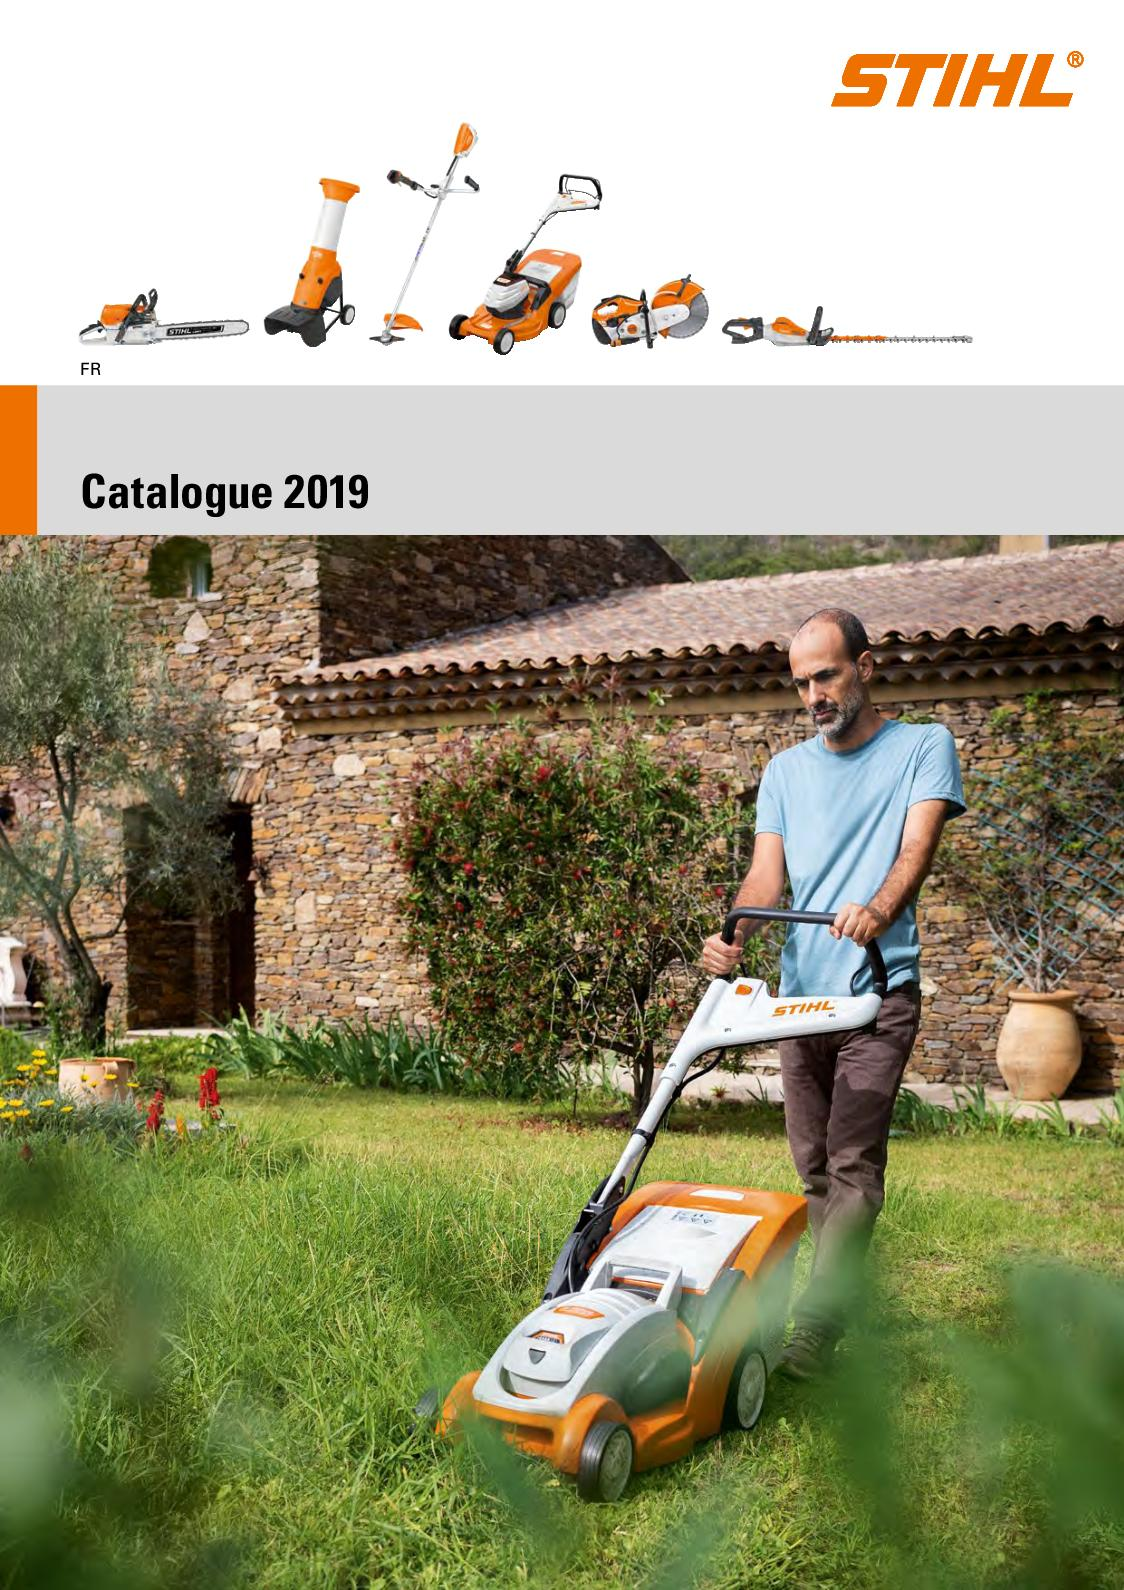 Stihl FS56 rotofil Carb STHIL.. s/'adapte aussi KM56 good working order